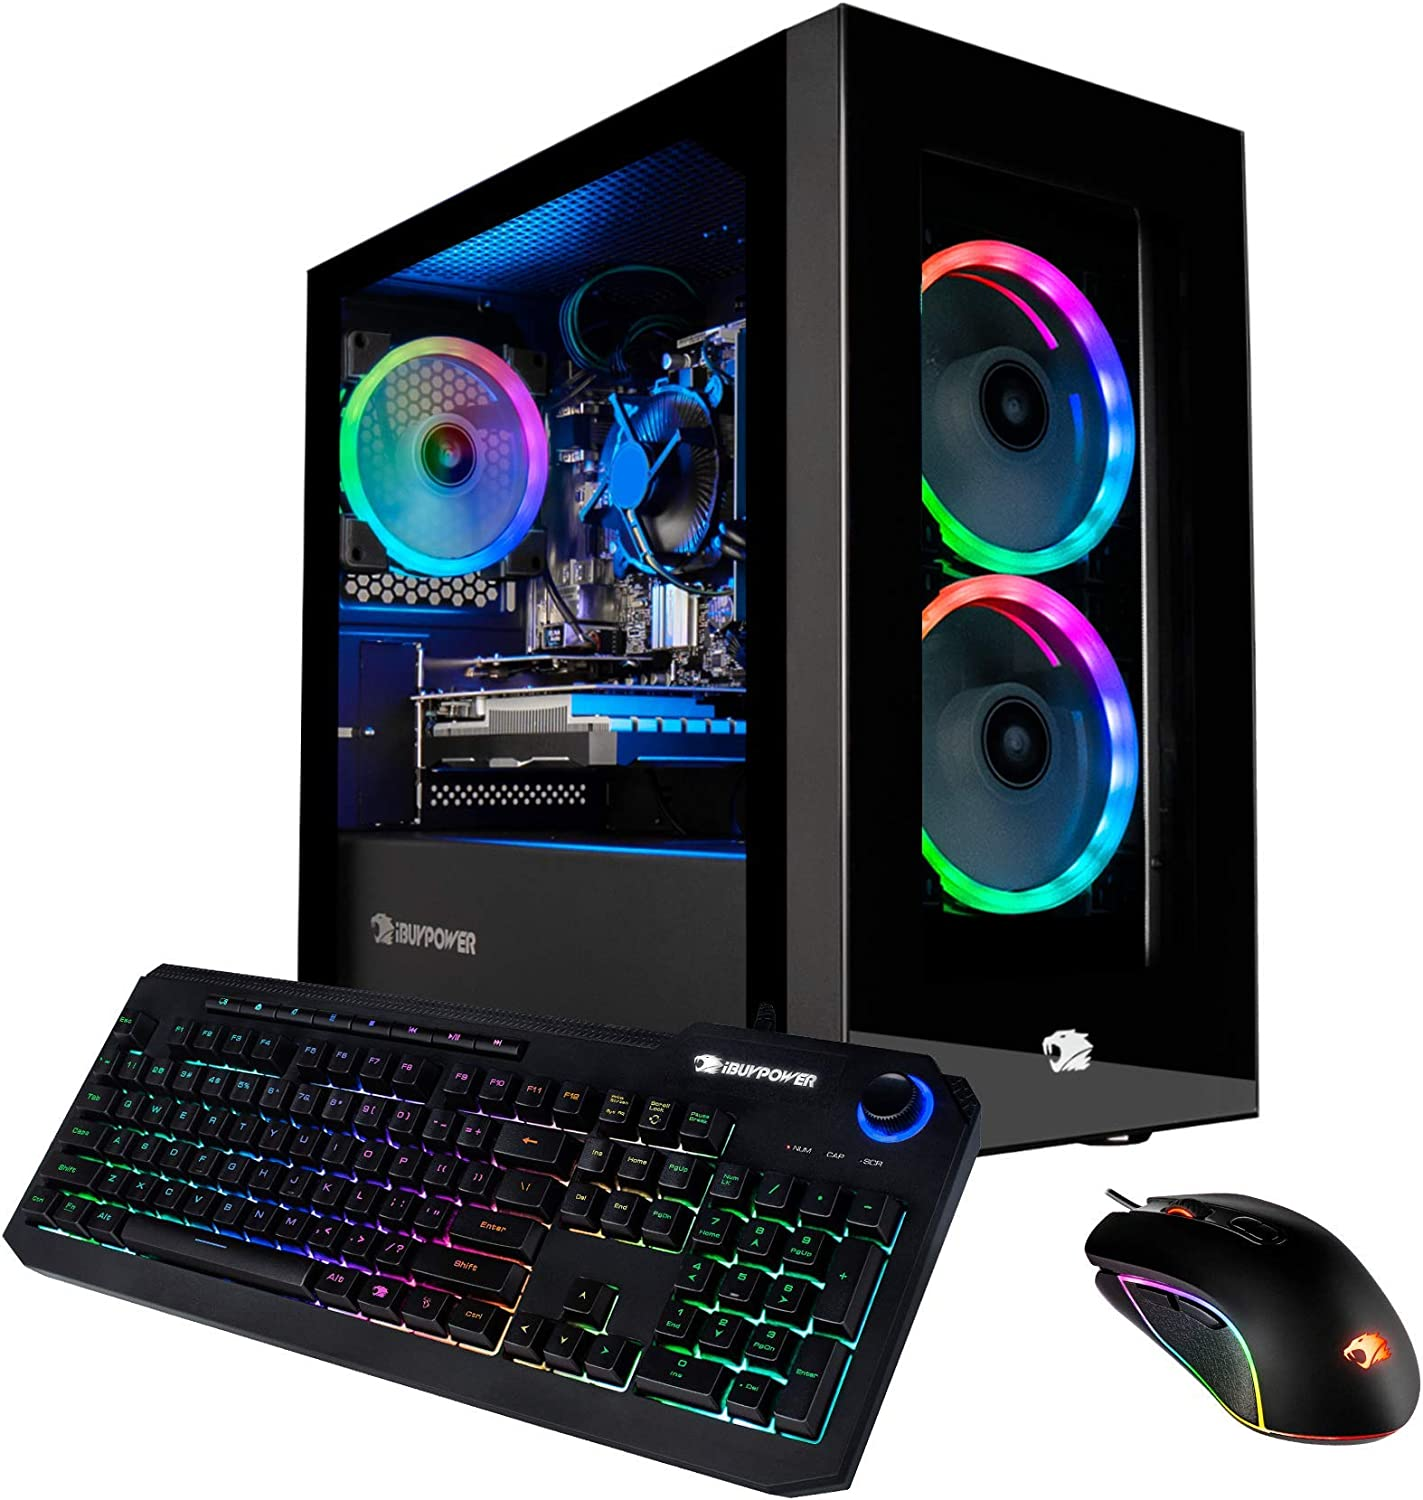 iBUYPOWER Pro Gaming PC Computer Desktop Element Mini 9300 (AMD Ryzen 3 3100 3.6GHz, AMD Radeon RX 550 2GB, 8GB DDR4 RAM, 240GB SSD, WiFi Ready, Windows 10 Home)